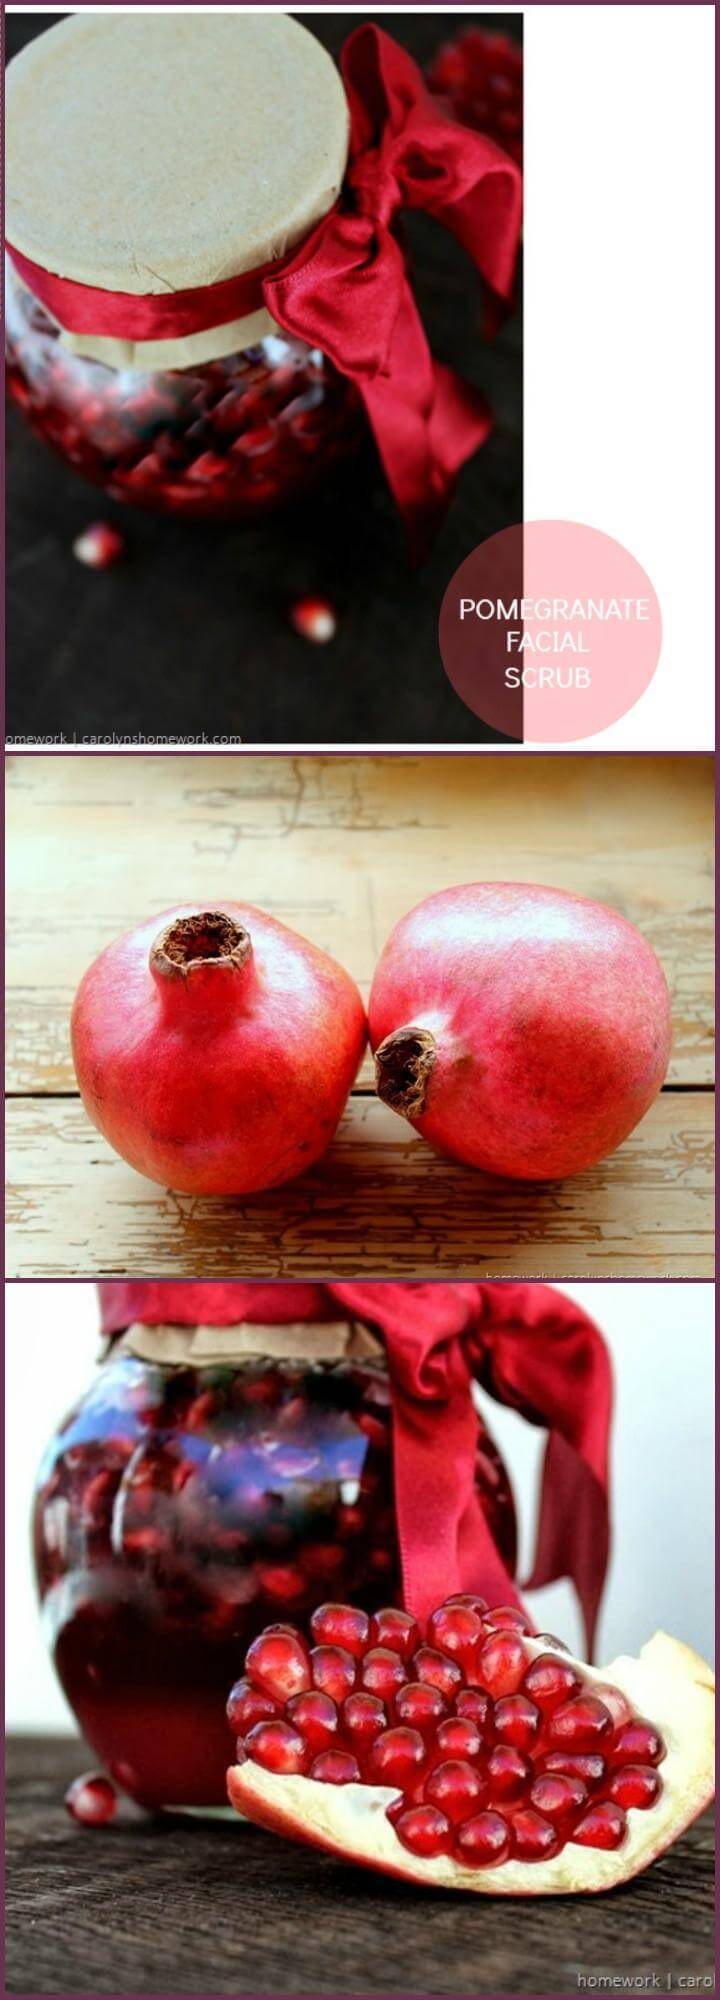 diy pomegranate facial scrub